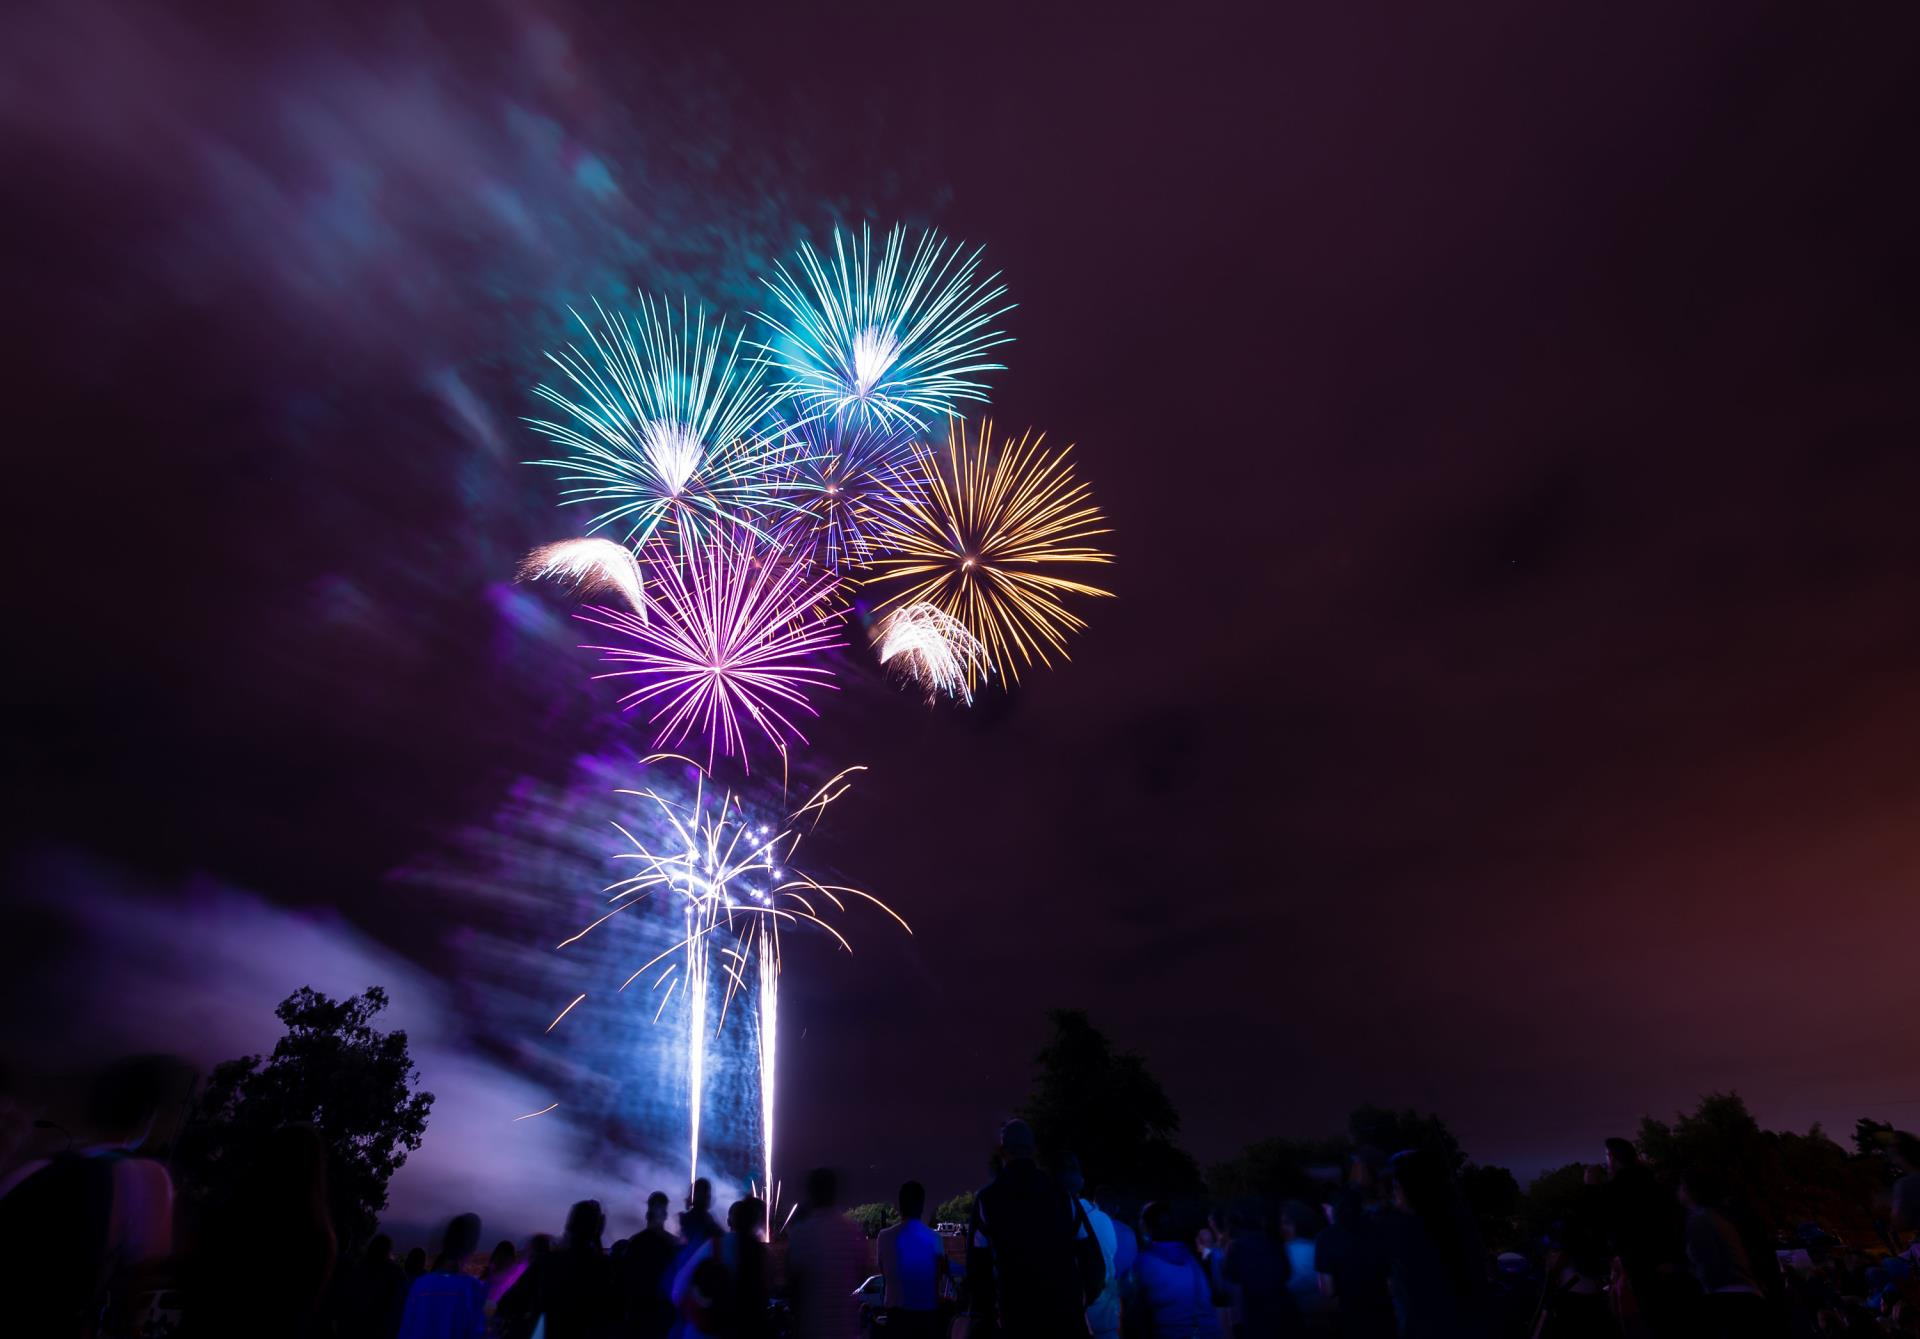 Fireworks display at city Fourth of July event